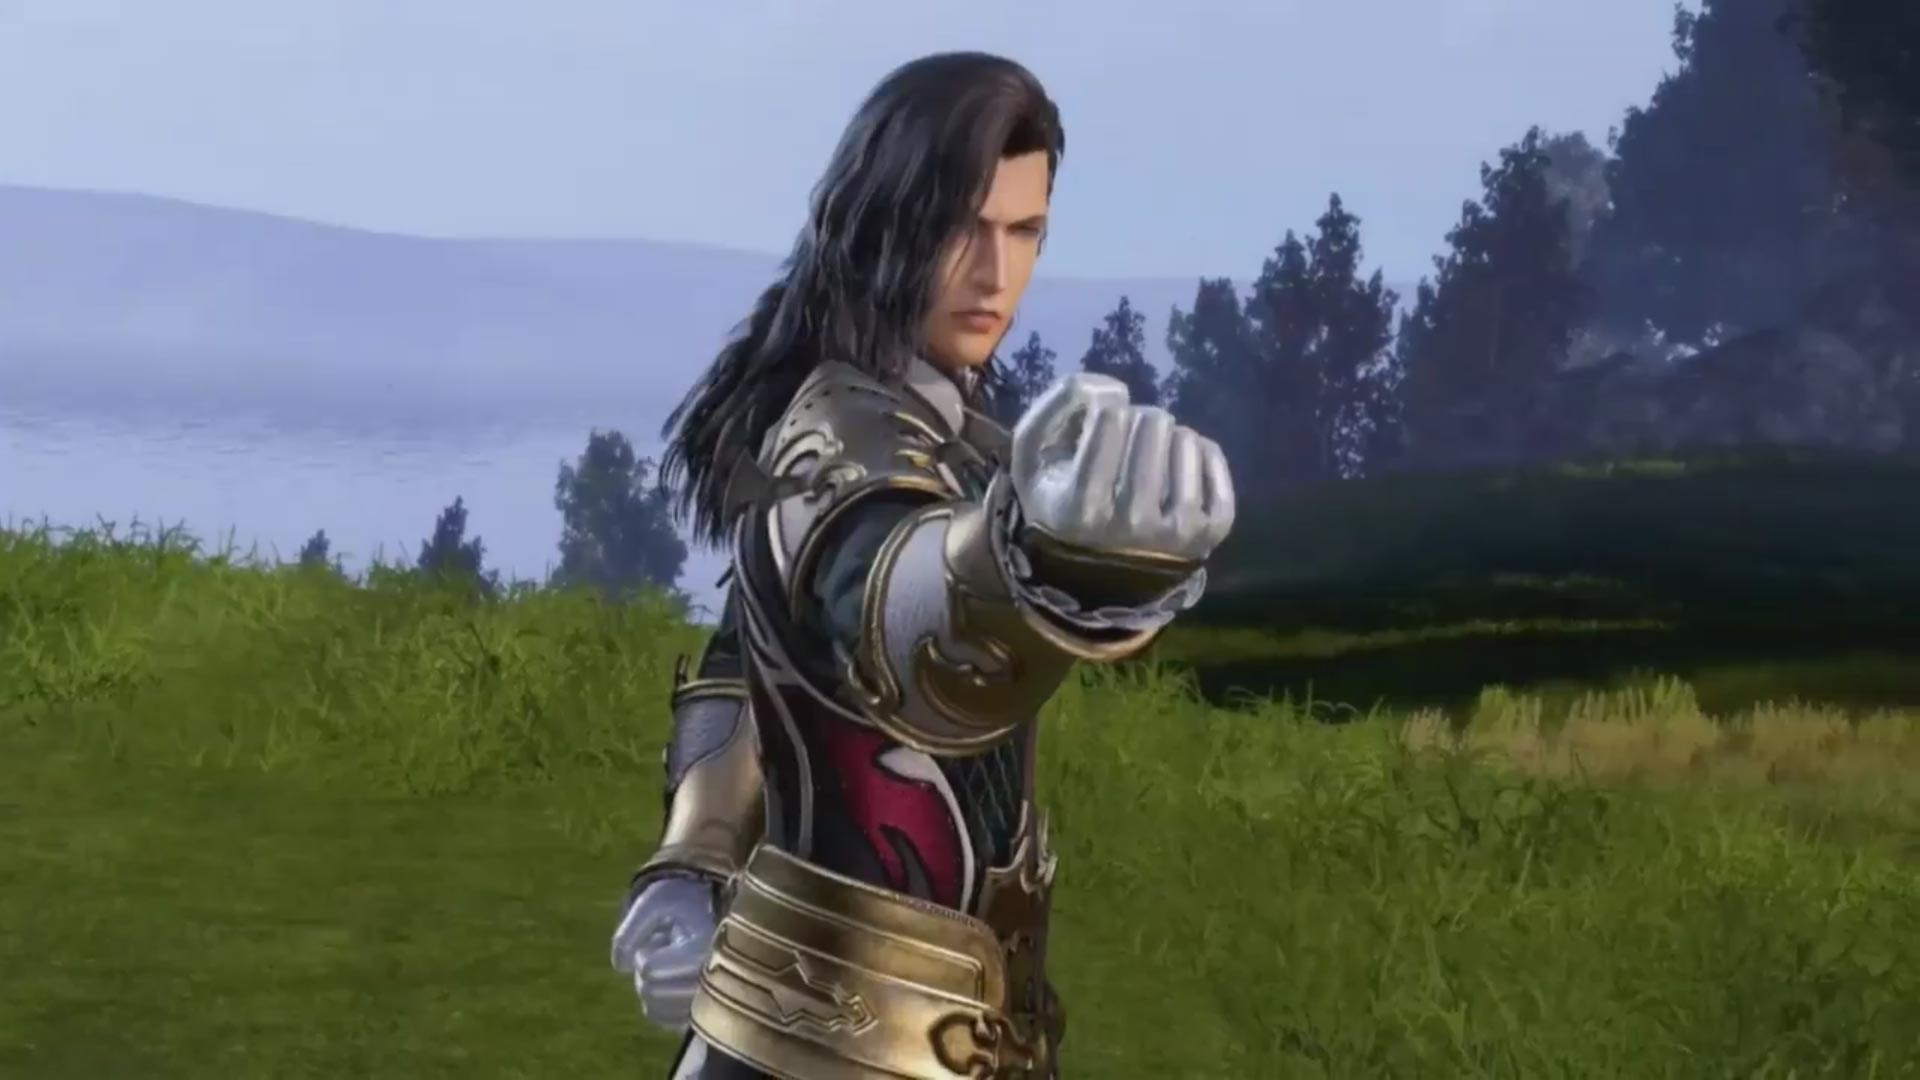 Dissidia Final Fantasy NT Vayne Reveal 12 out of 12 image gallery